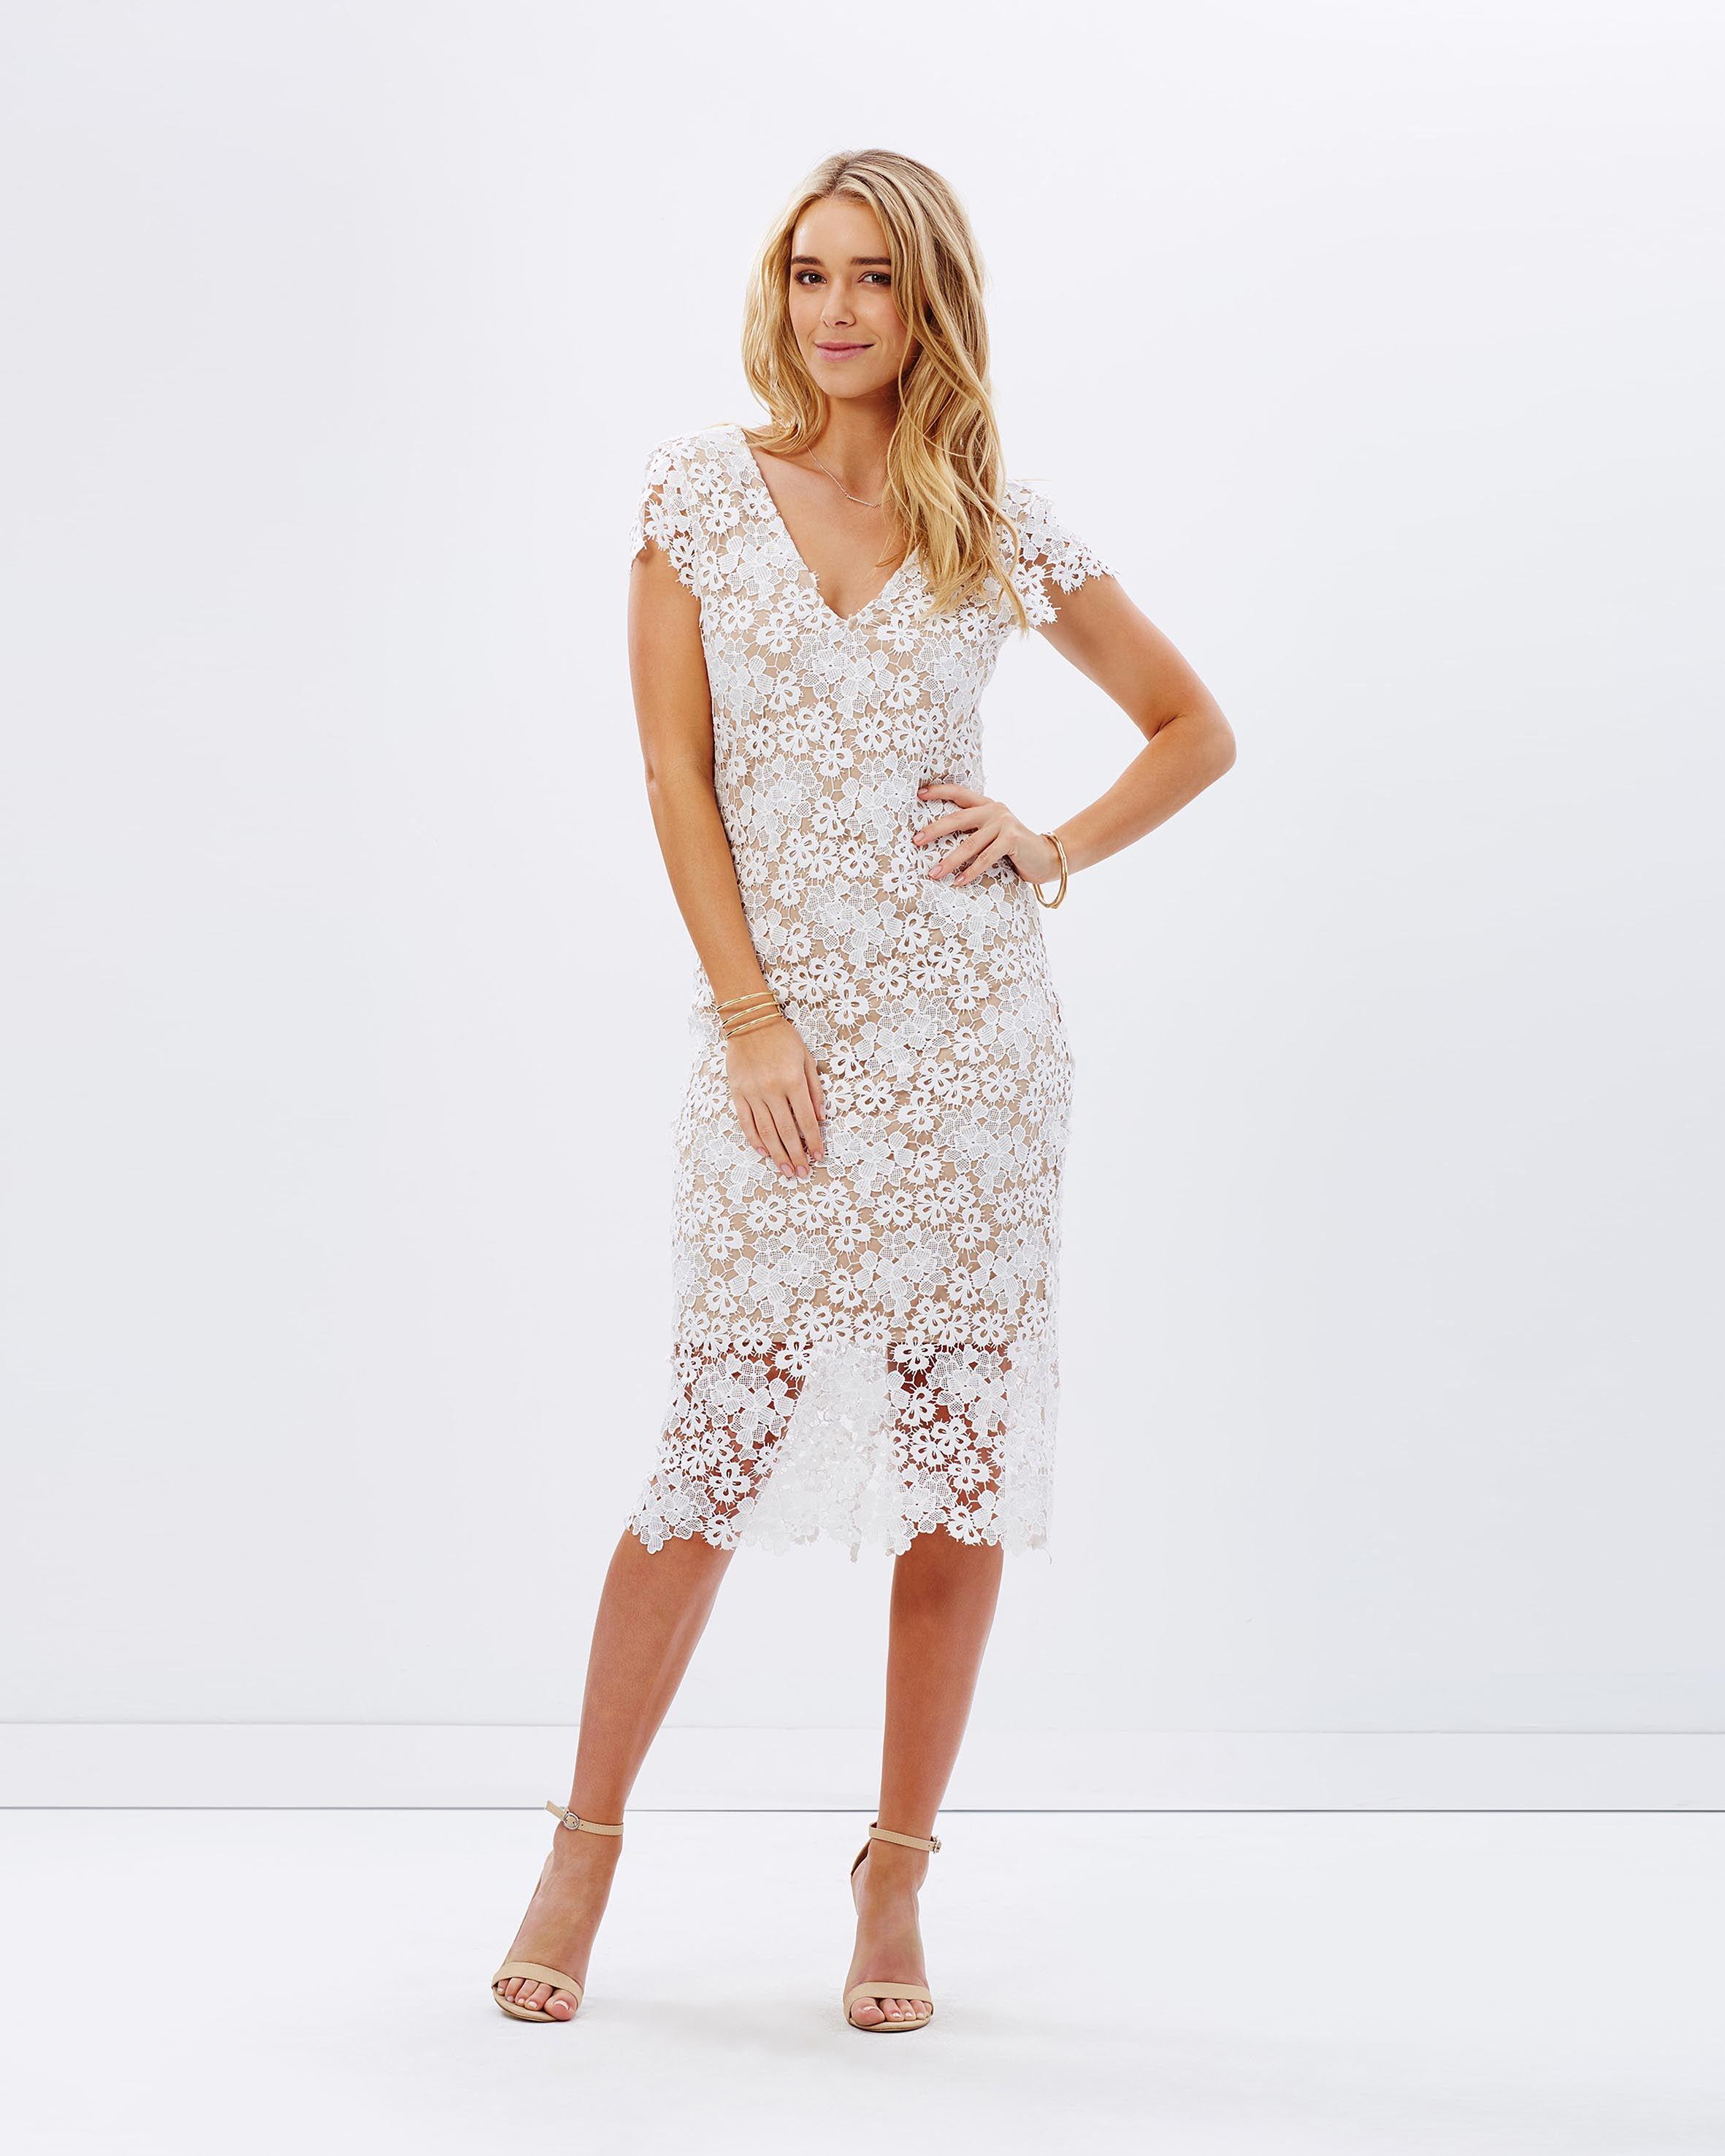 Lace Cocktail Dress Australia